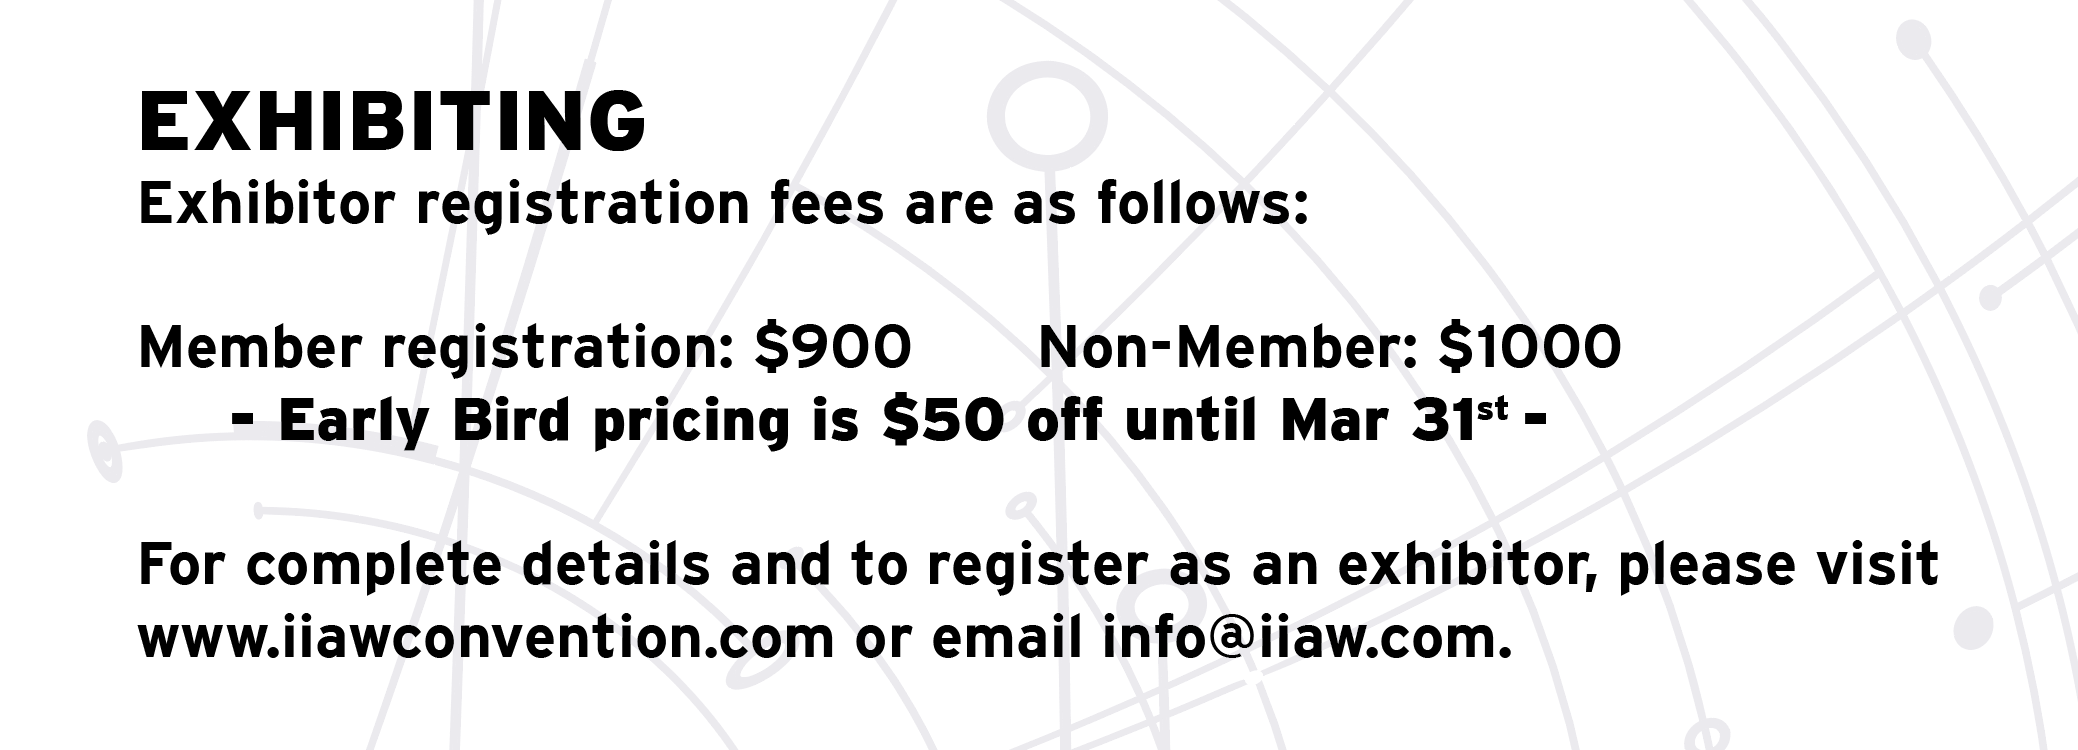 EARLY BIRD PRICING EXTENDED TO MARCH 31ST.